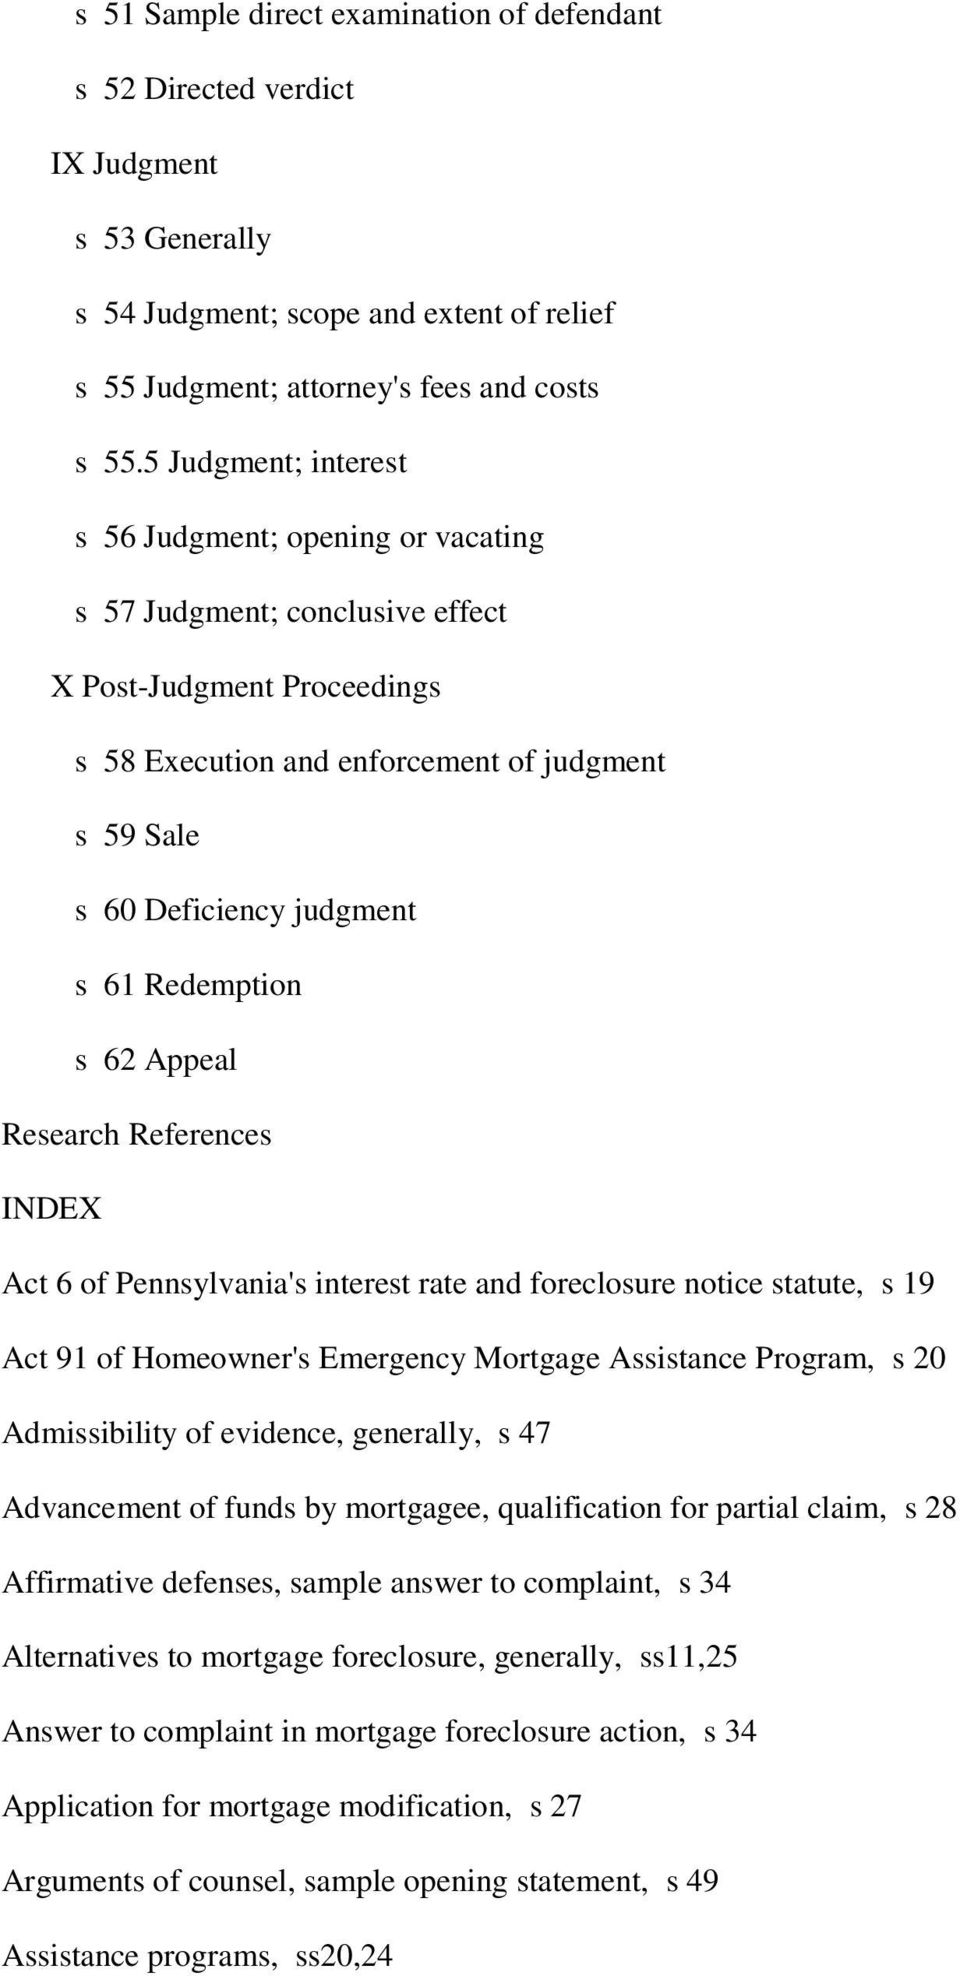 Litigation concerning mortgage foreclosures useful summary with redemption s 62 appeal research references index act 6 of pennsylvanias interest rate and foreclosure notice spiritdancerdesigns Images